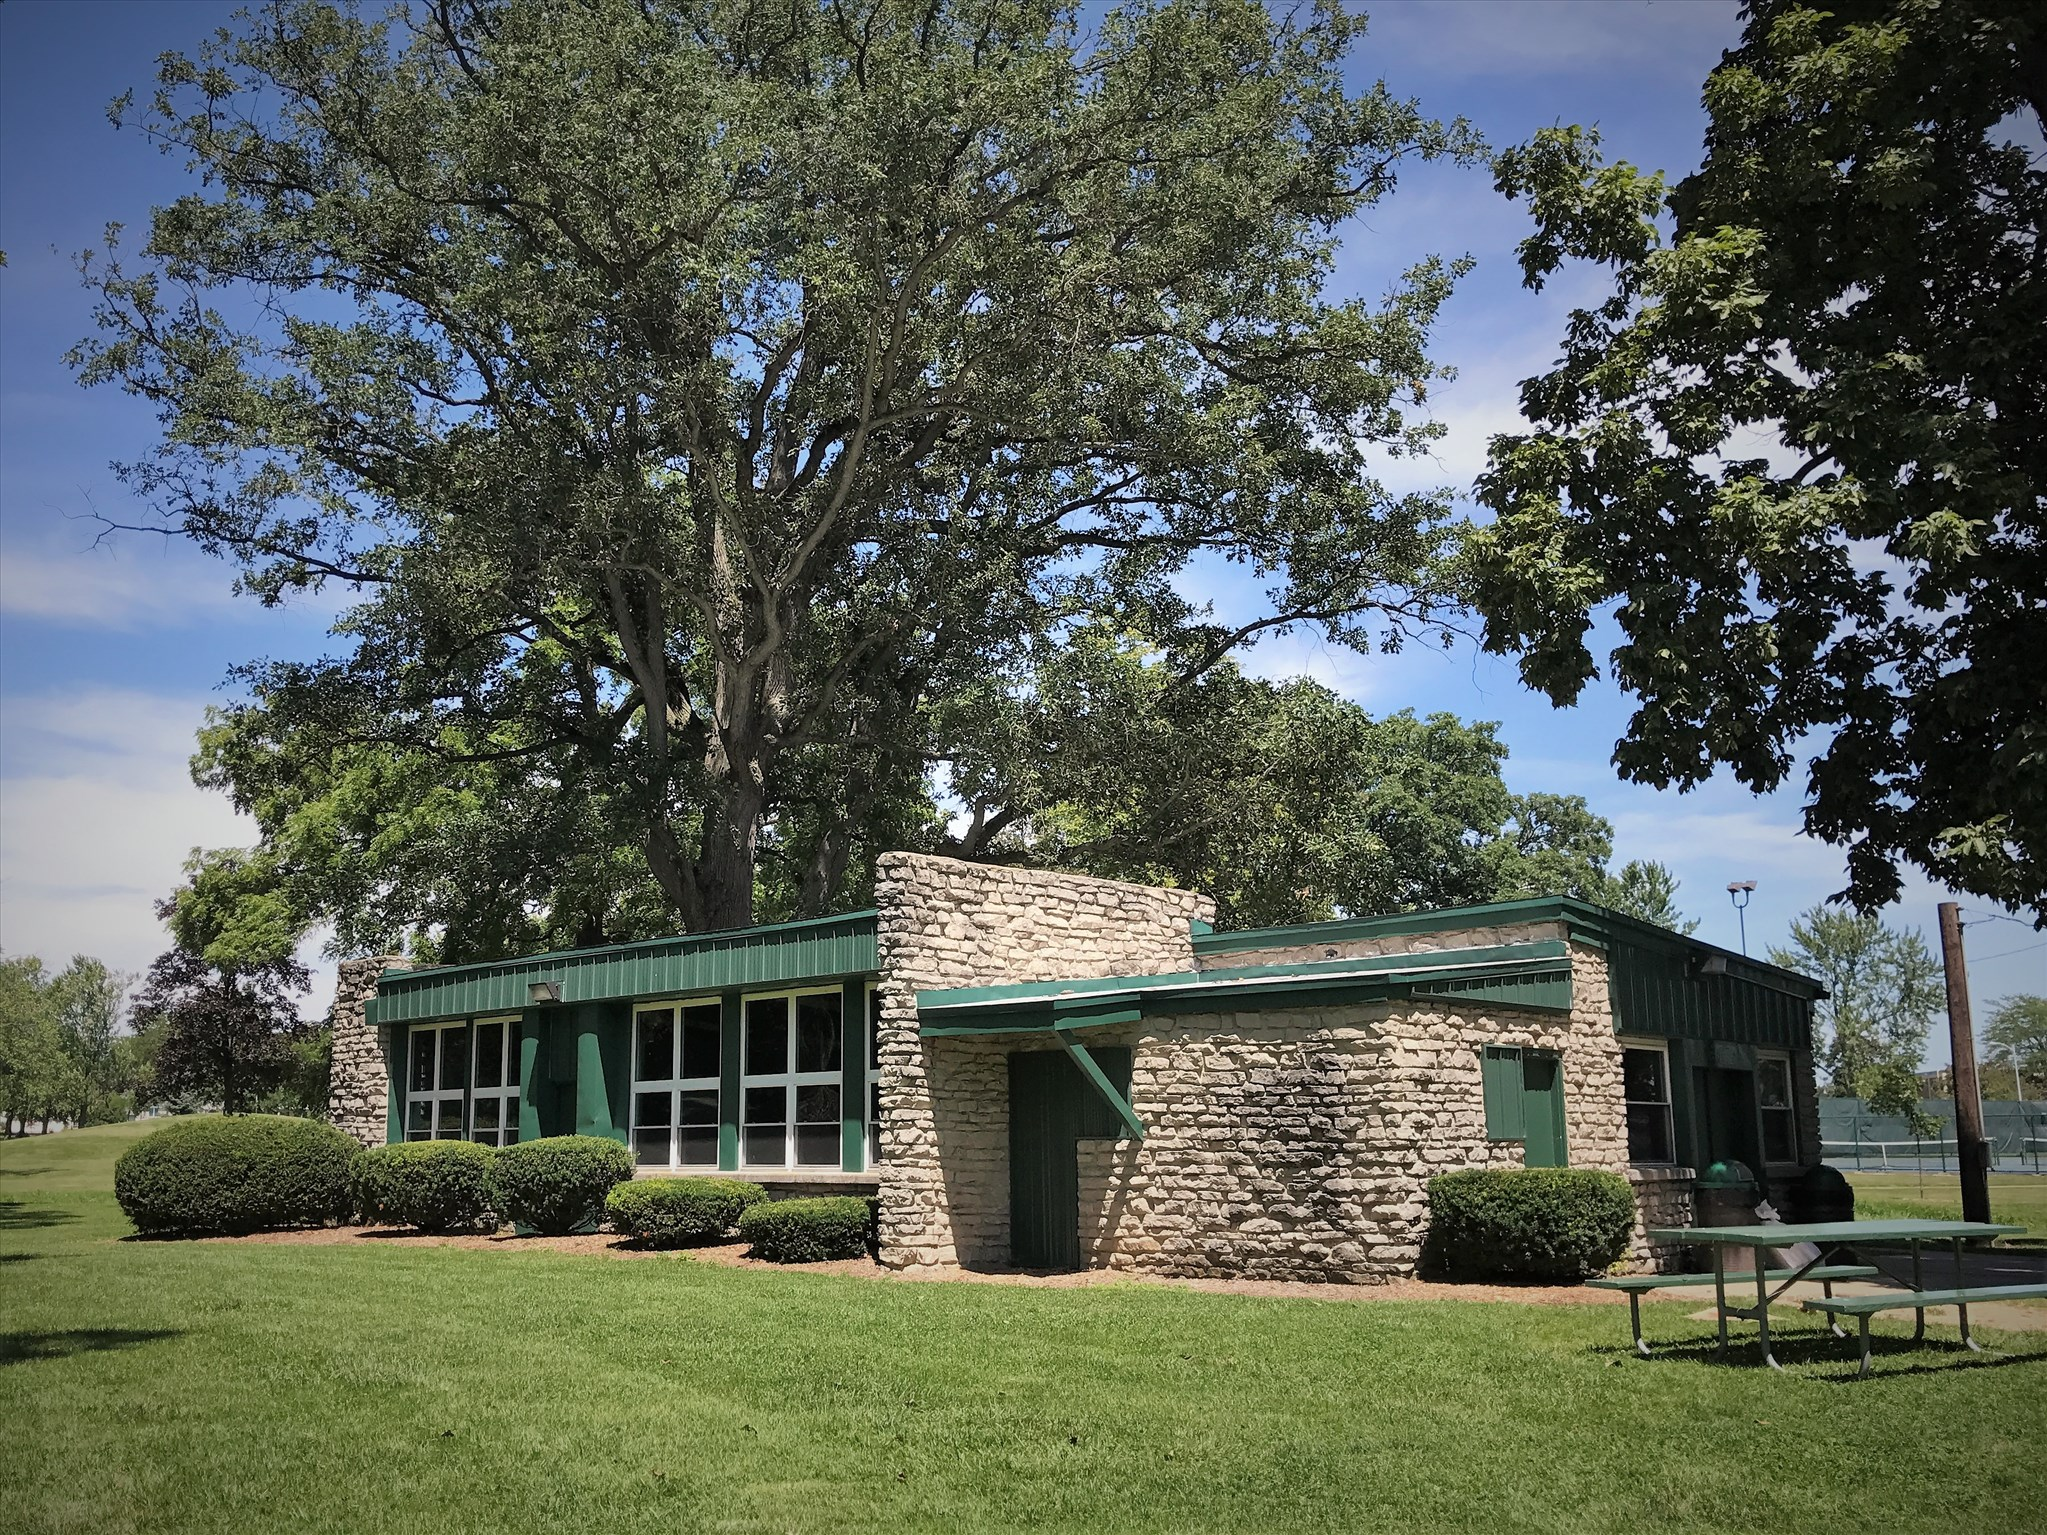 Shelter House Rental Park Information City Of Wauseon